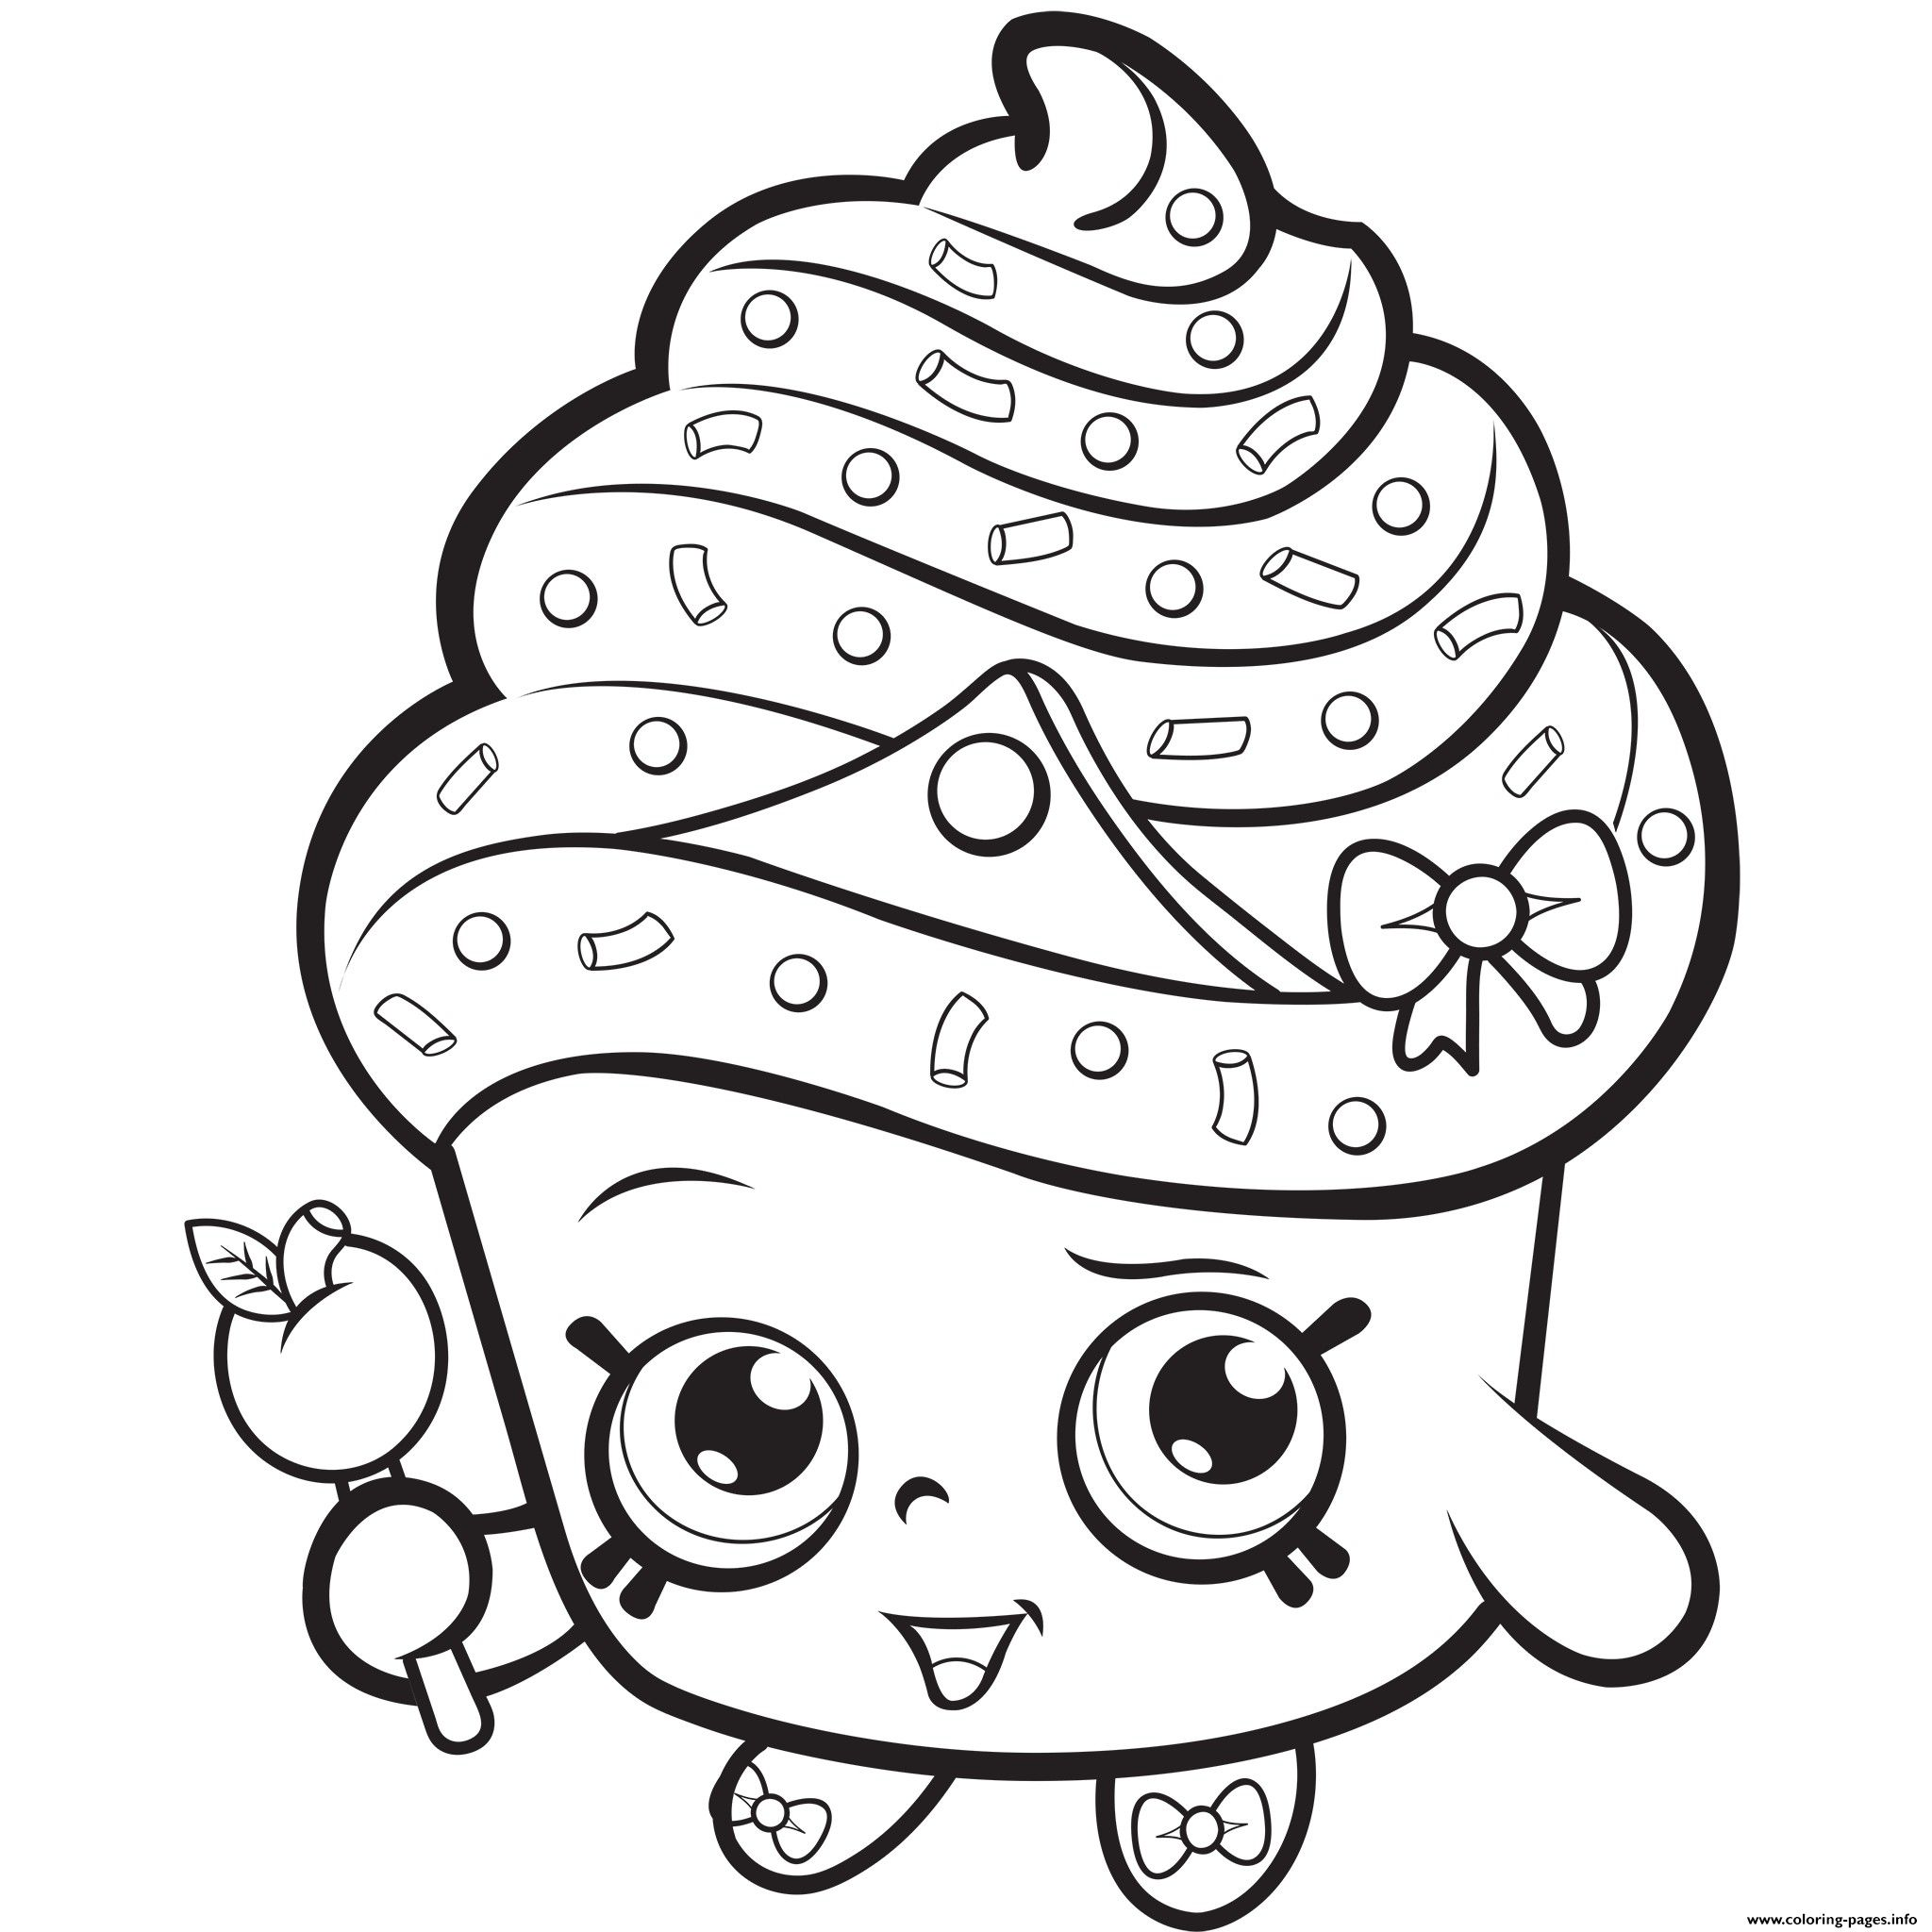 Shopkins Cupcake Princess Coloring Page Through The Thousands Of Photos Online About Cupcake Coloring Pages Shopkins Colouring Pages Princess Coloring Pages